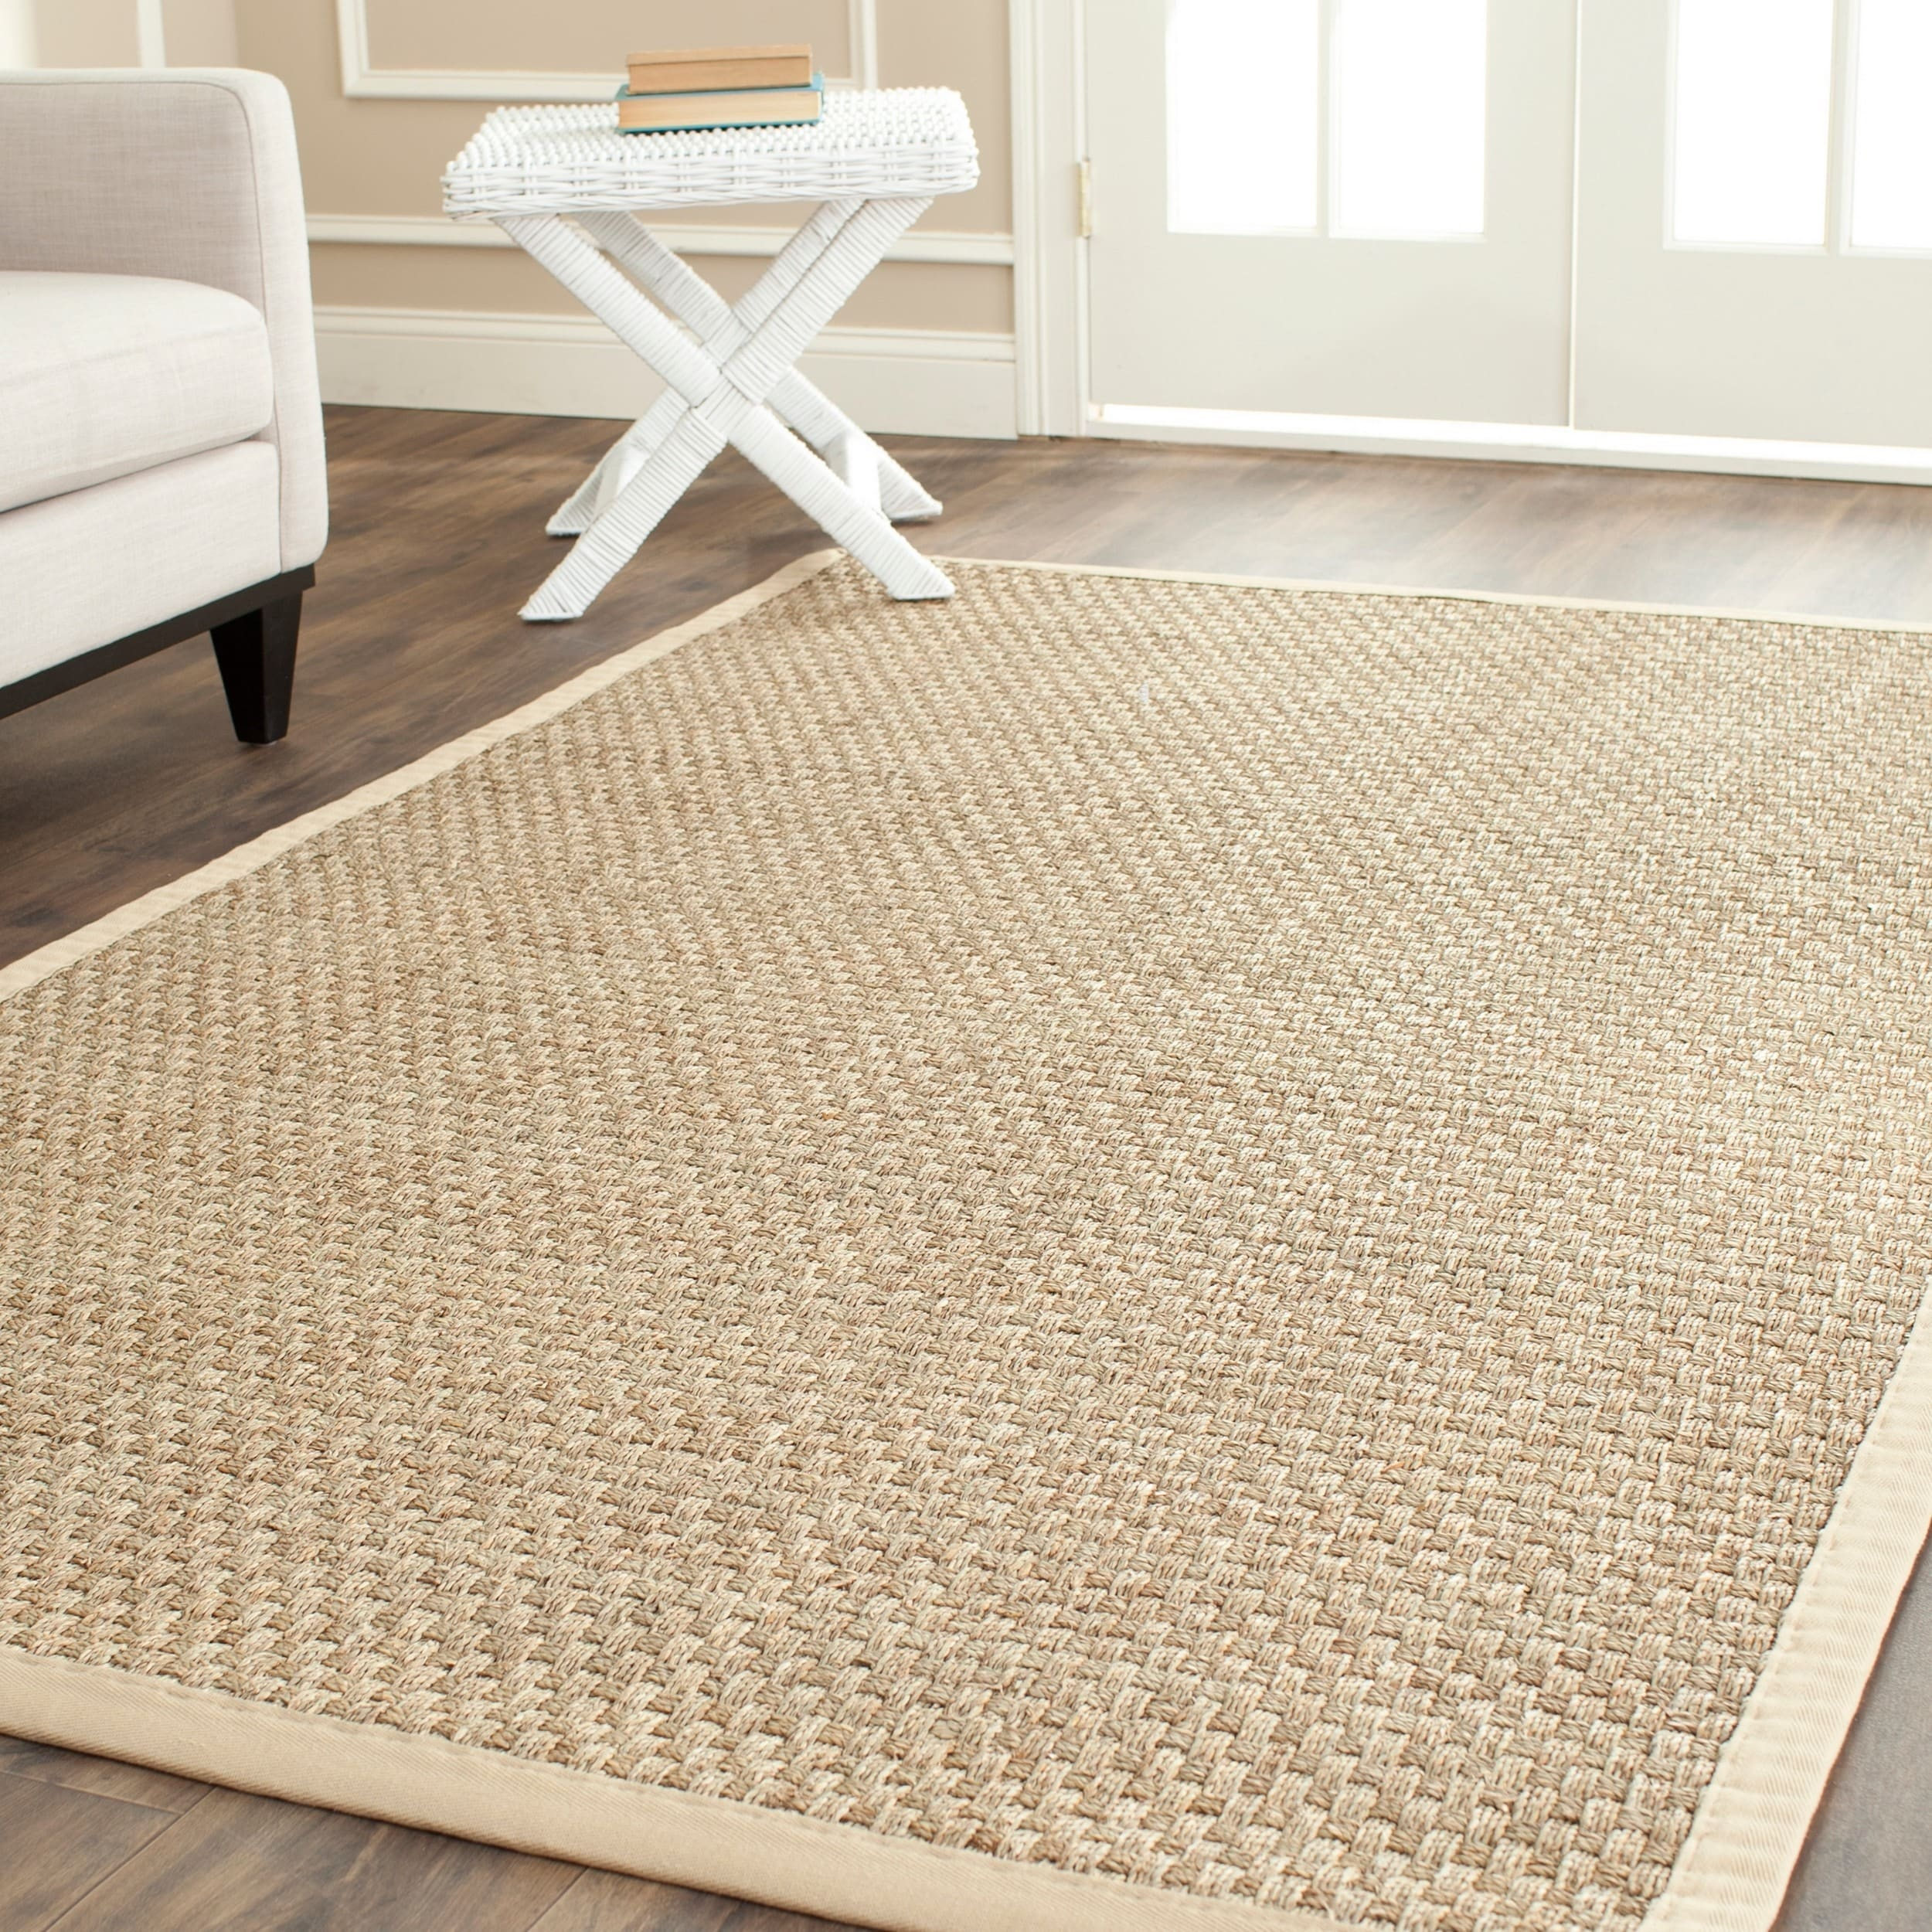 size rugs large seagrass of jute rug sisal ikea stockholm